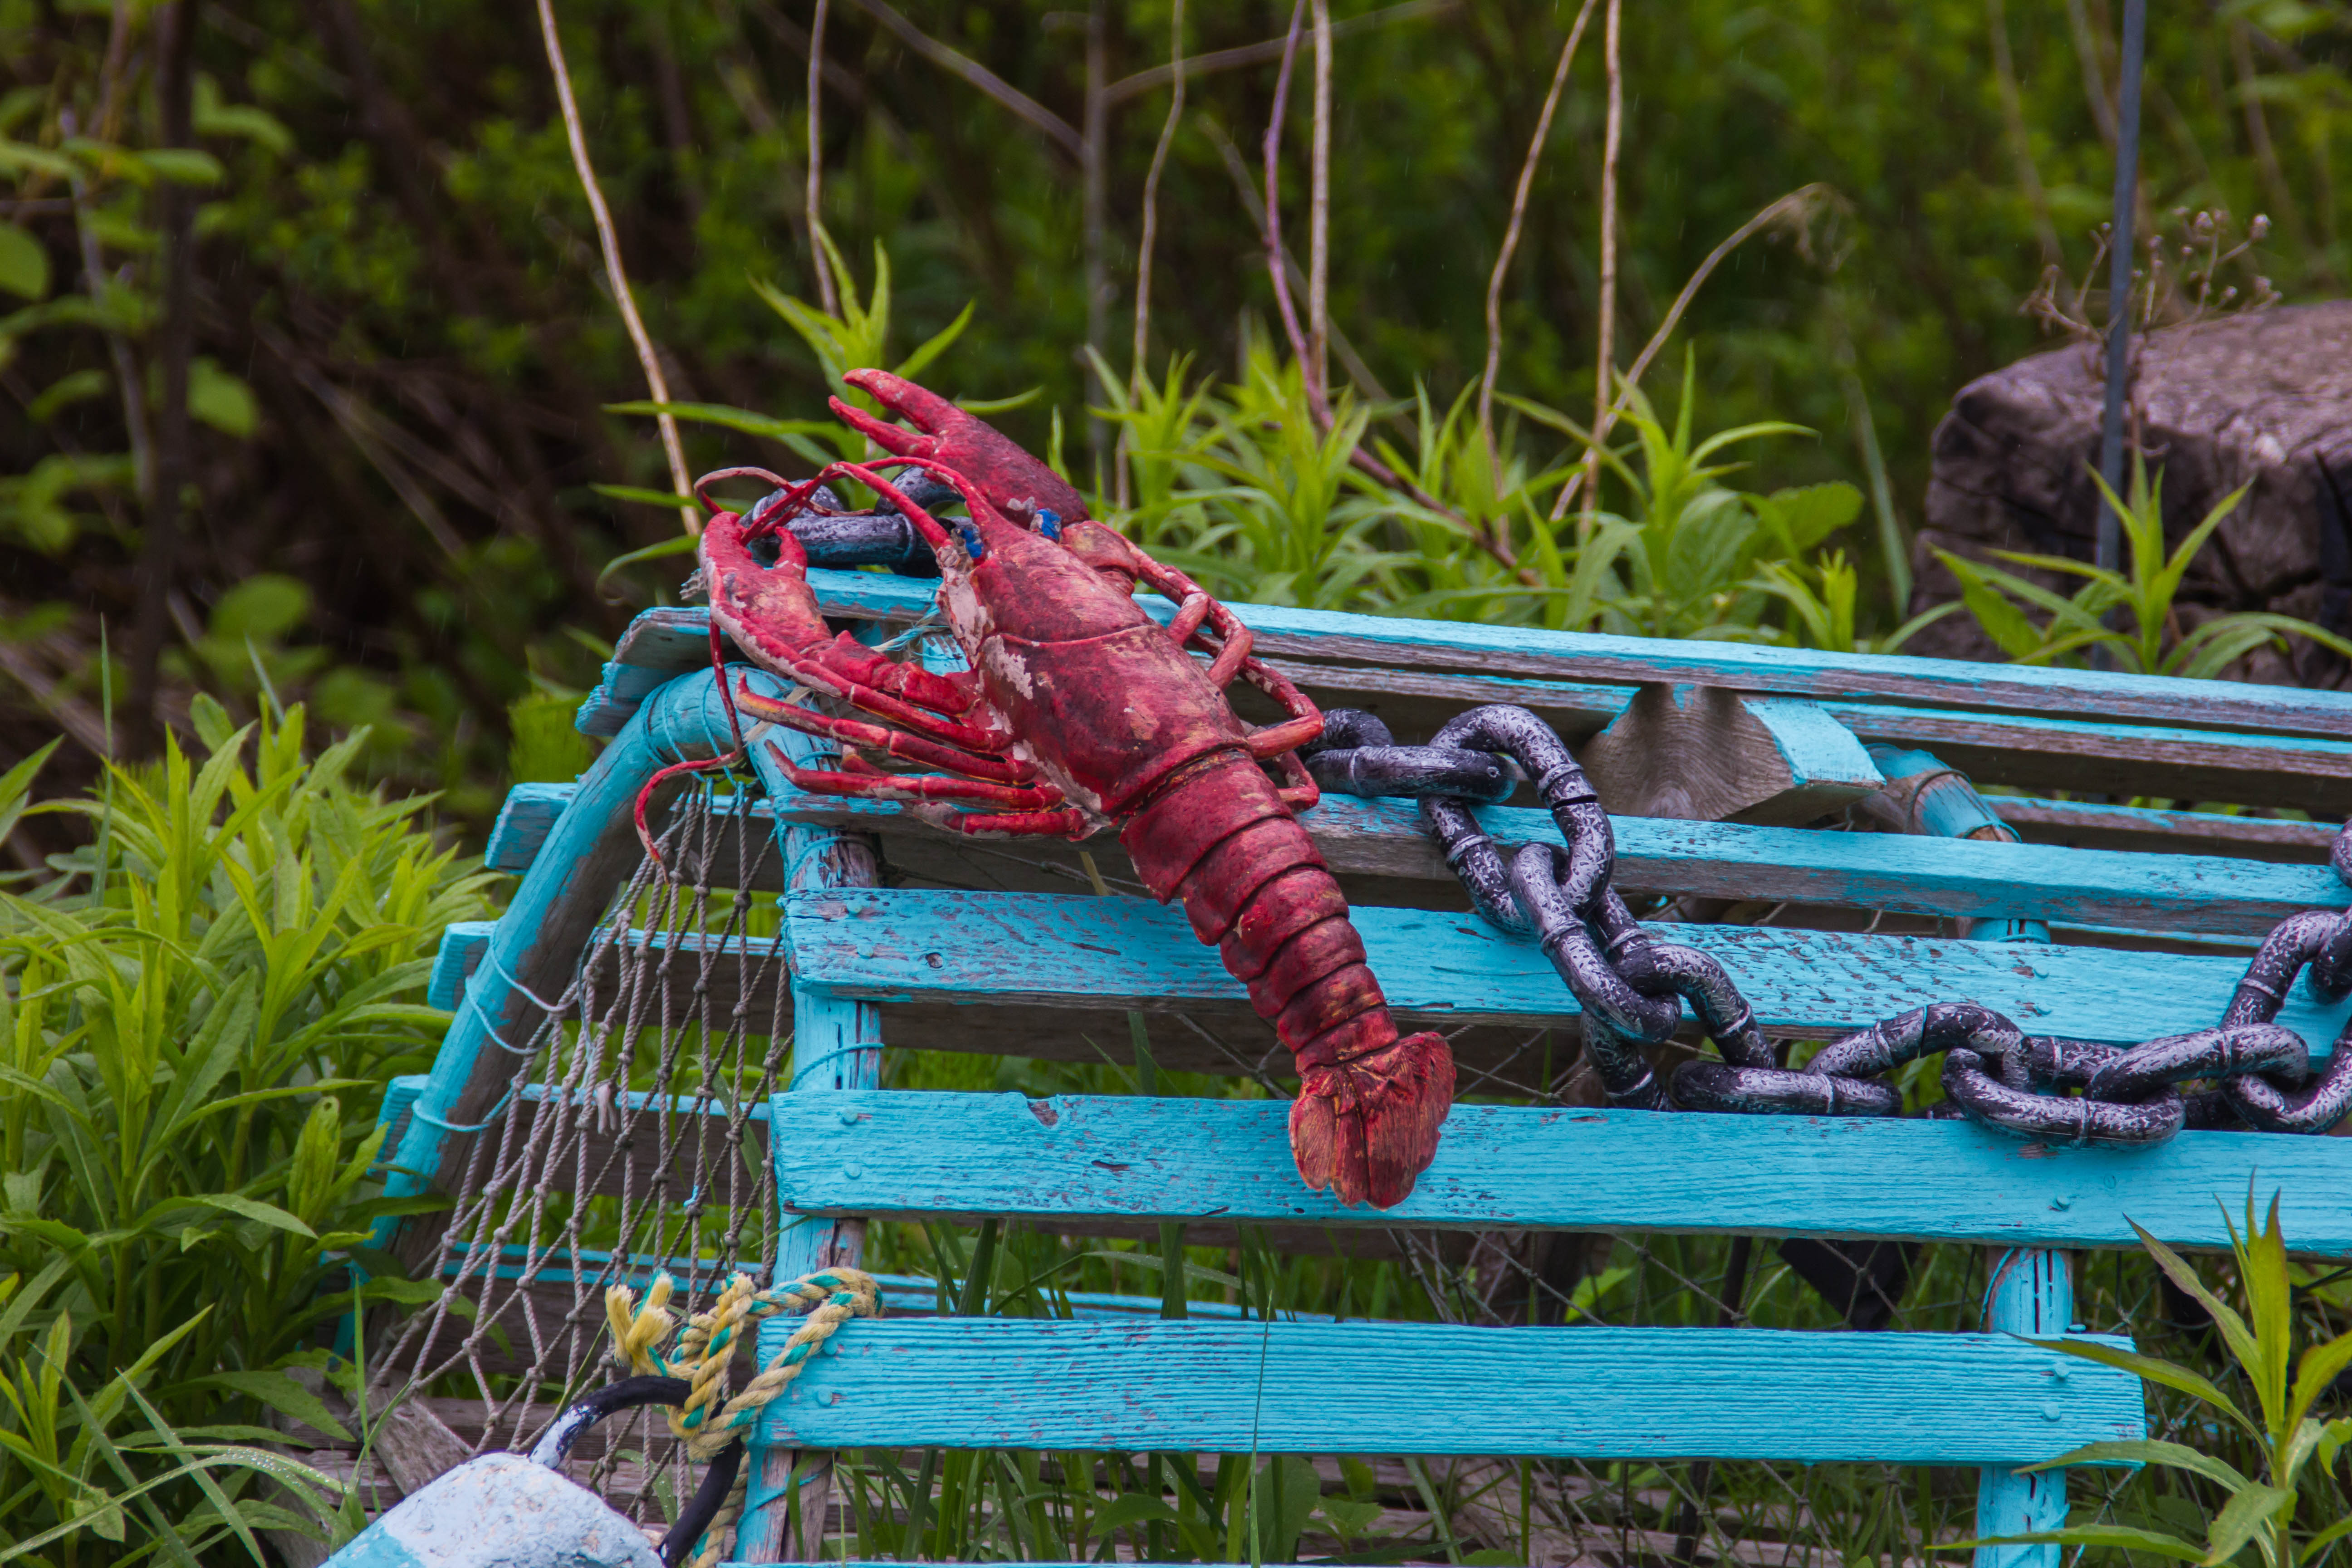 A blue, wooden lobster trap in Nova Scotia, Canada.